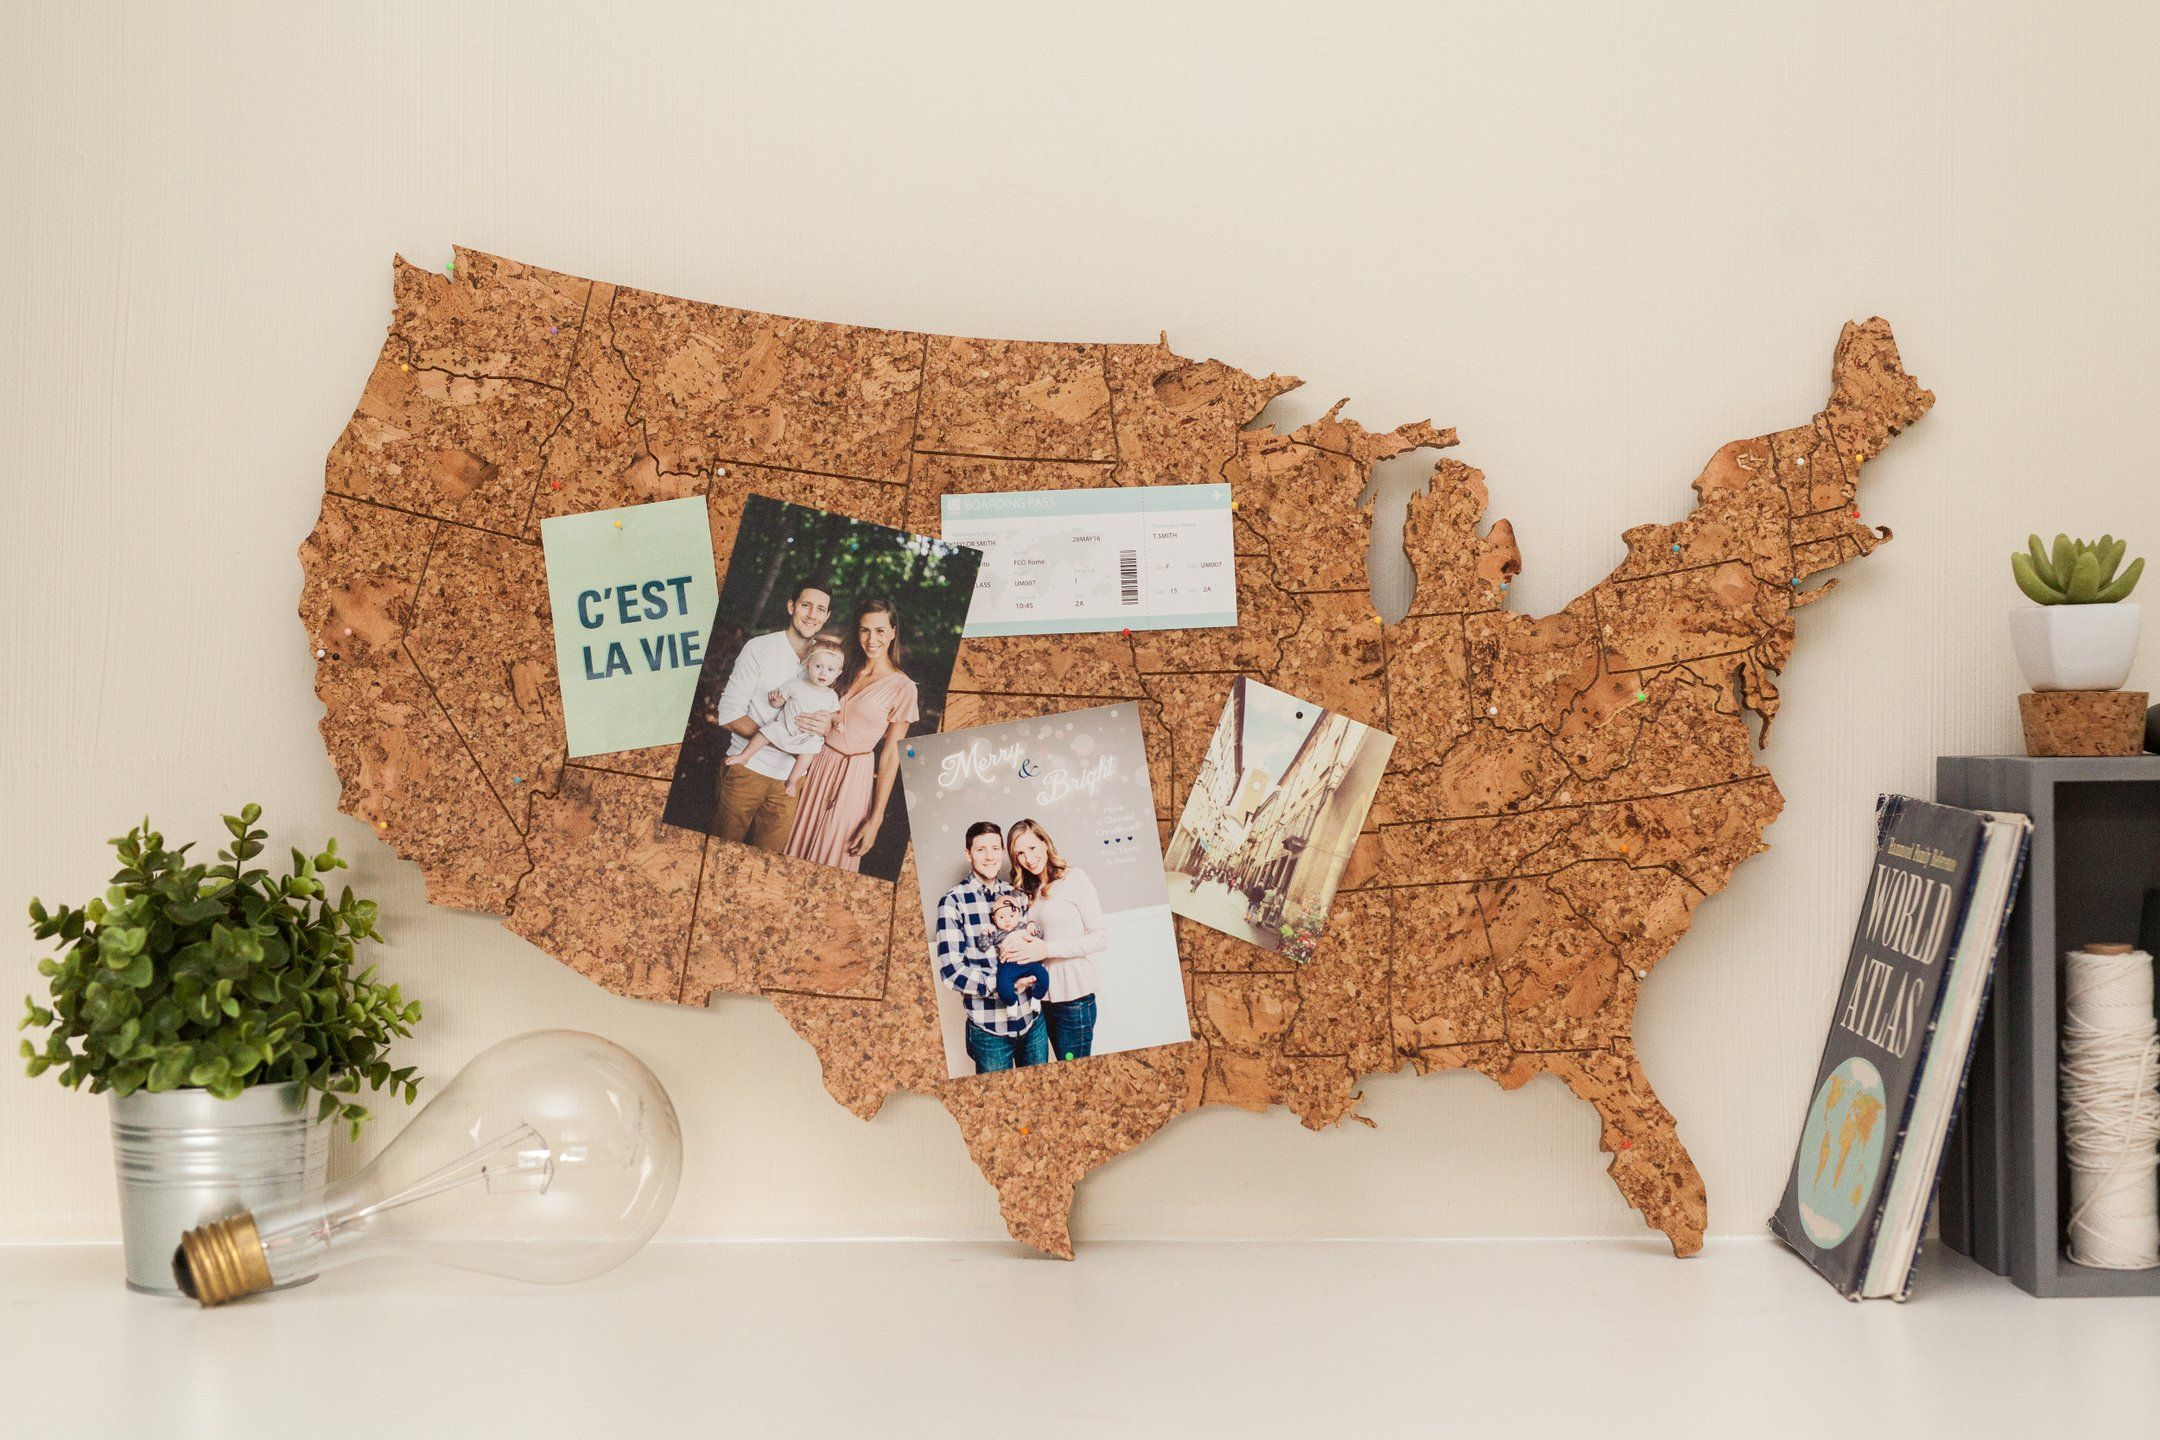 Large Cork Map of the United States Cork map Cork and United states